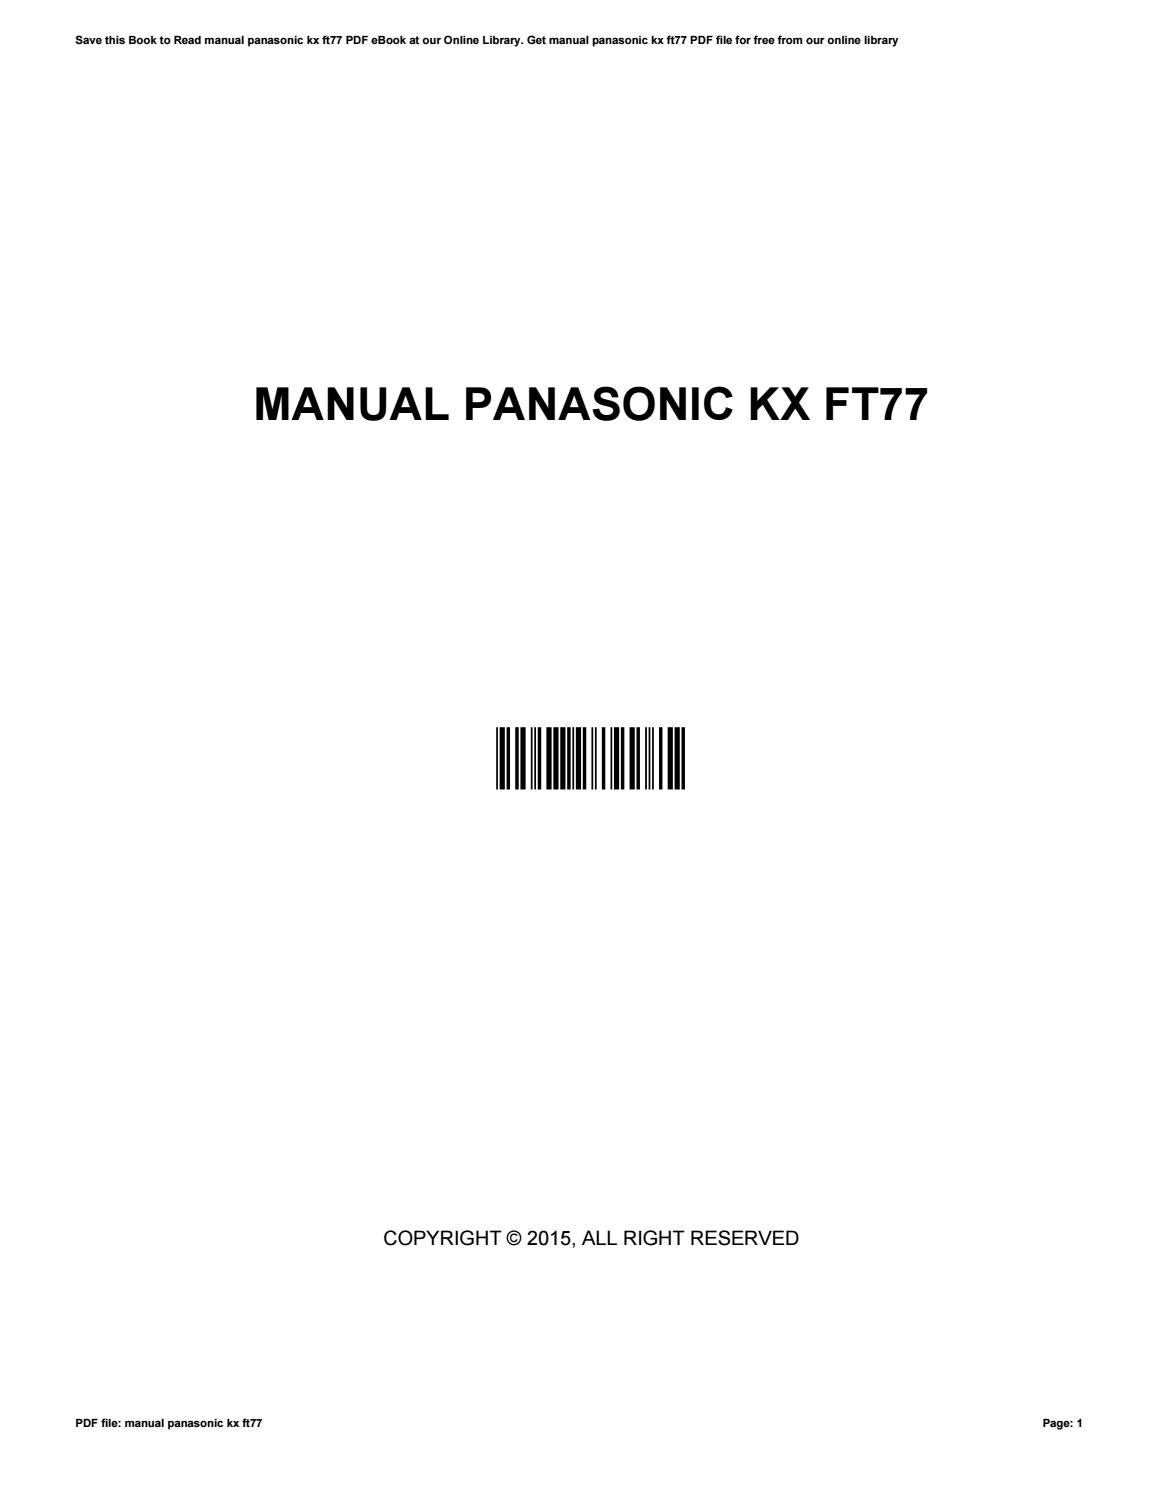 panasonic tc p60st30 manual ebook